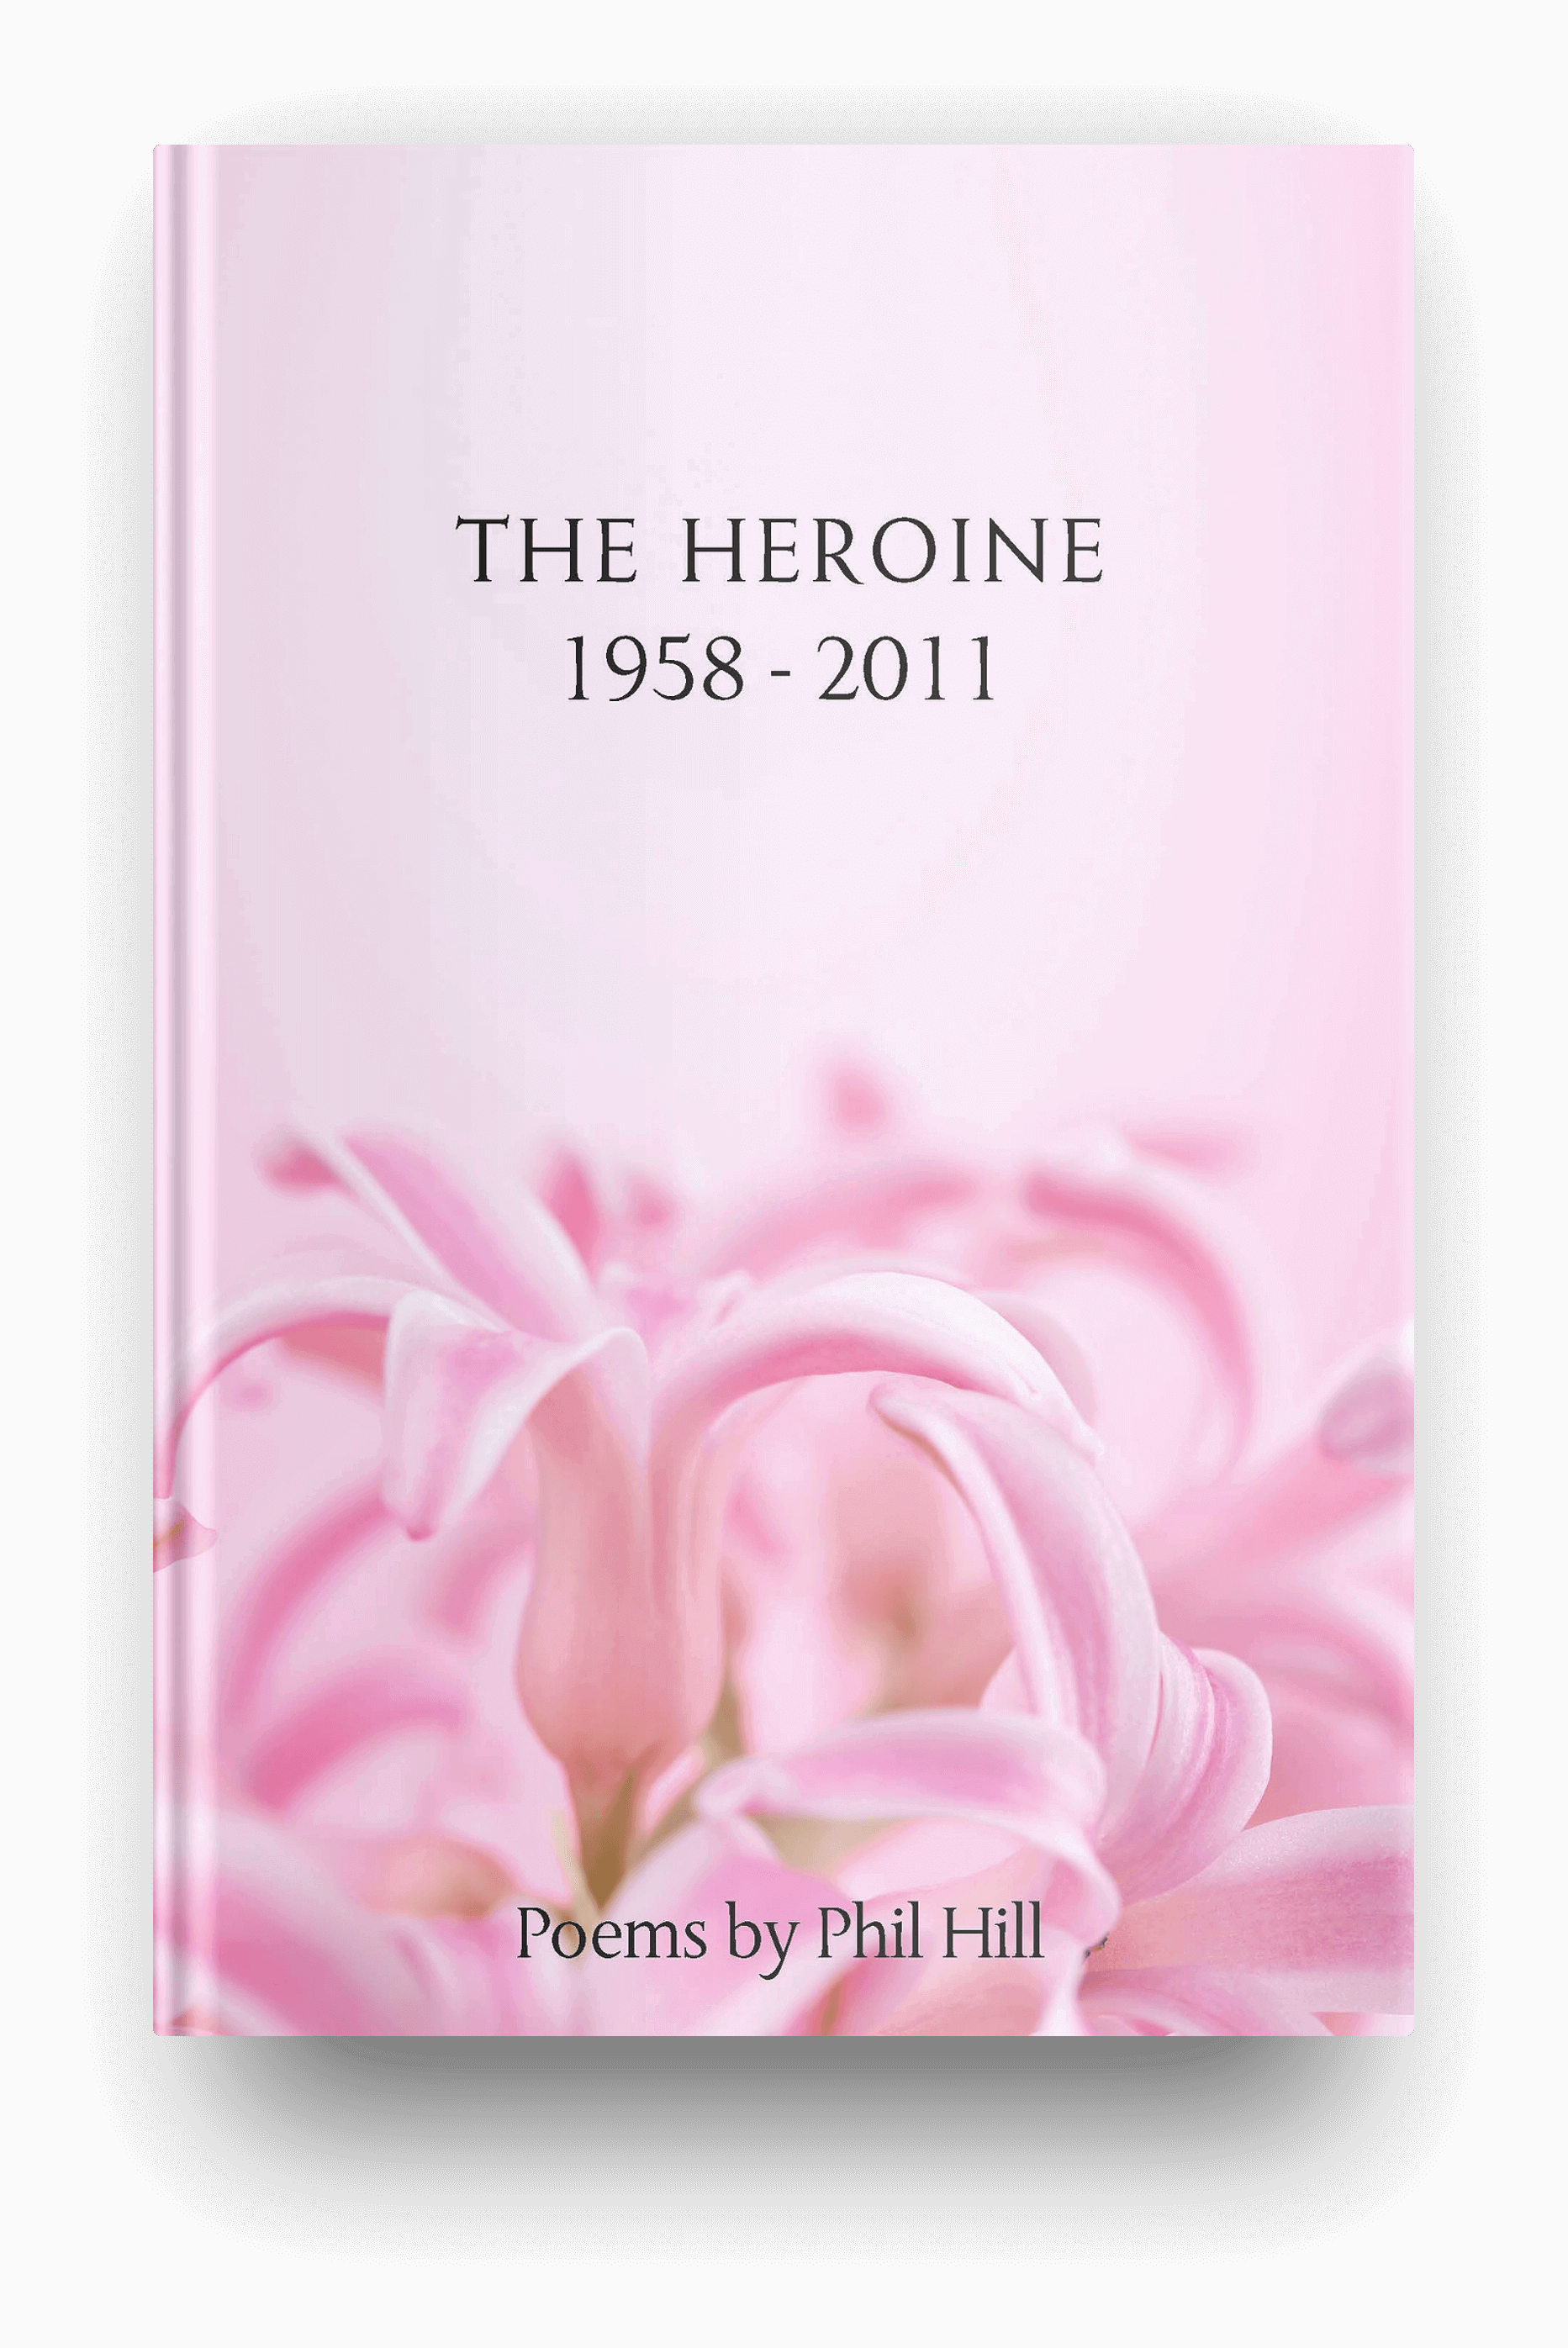 The Heroine, prosynch,